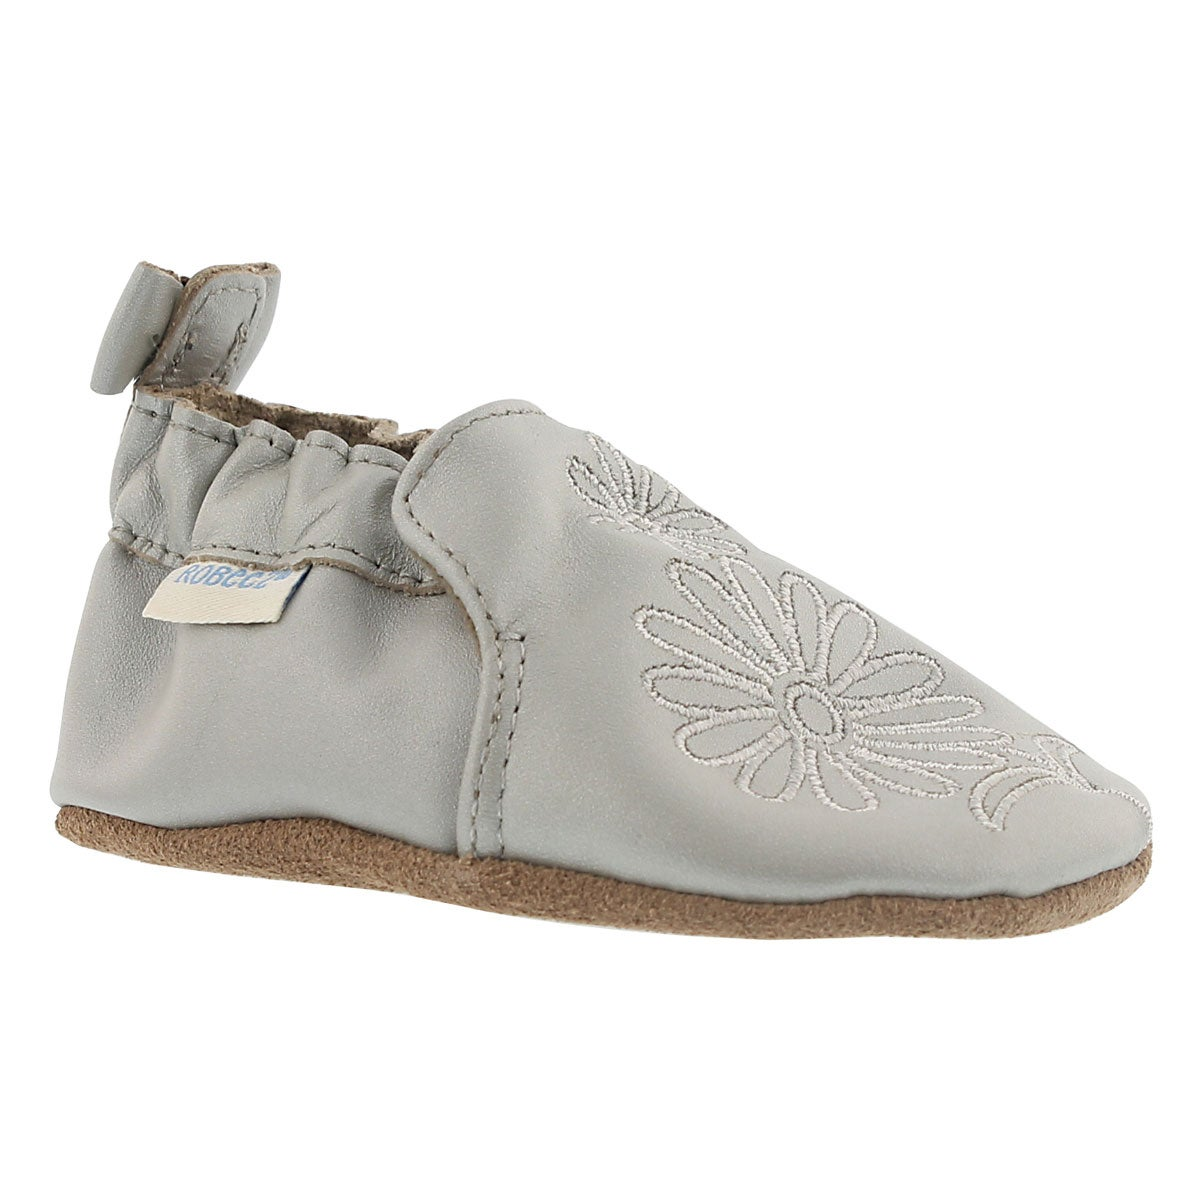 Inf Metallic Mist silver sole slipper